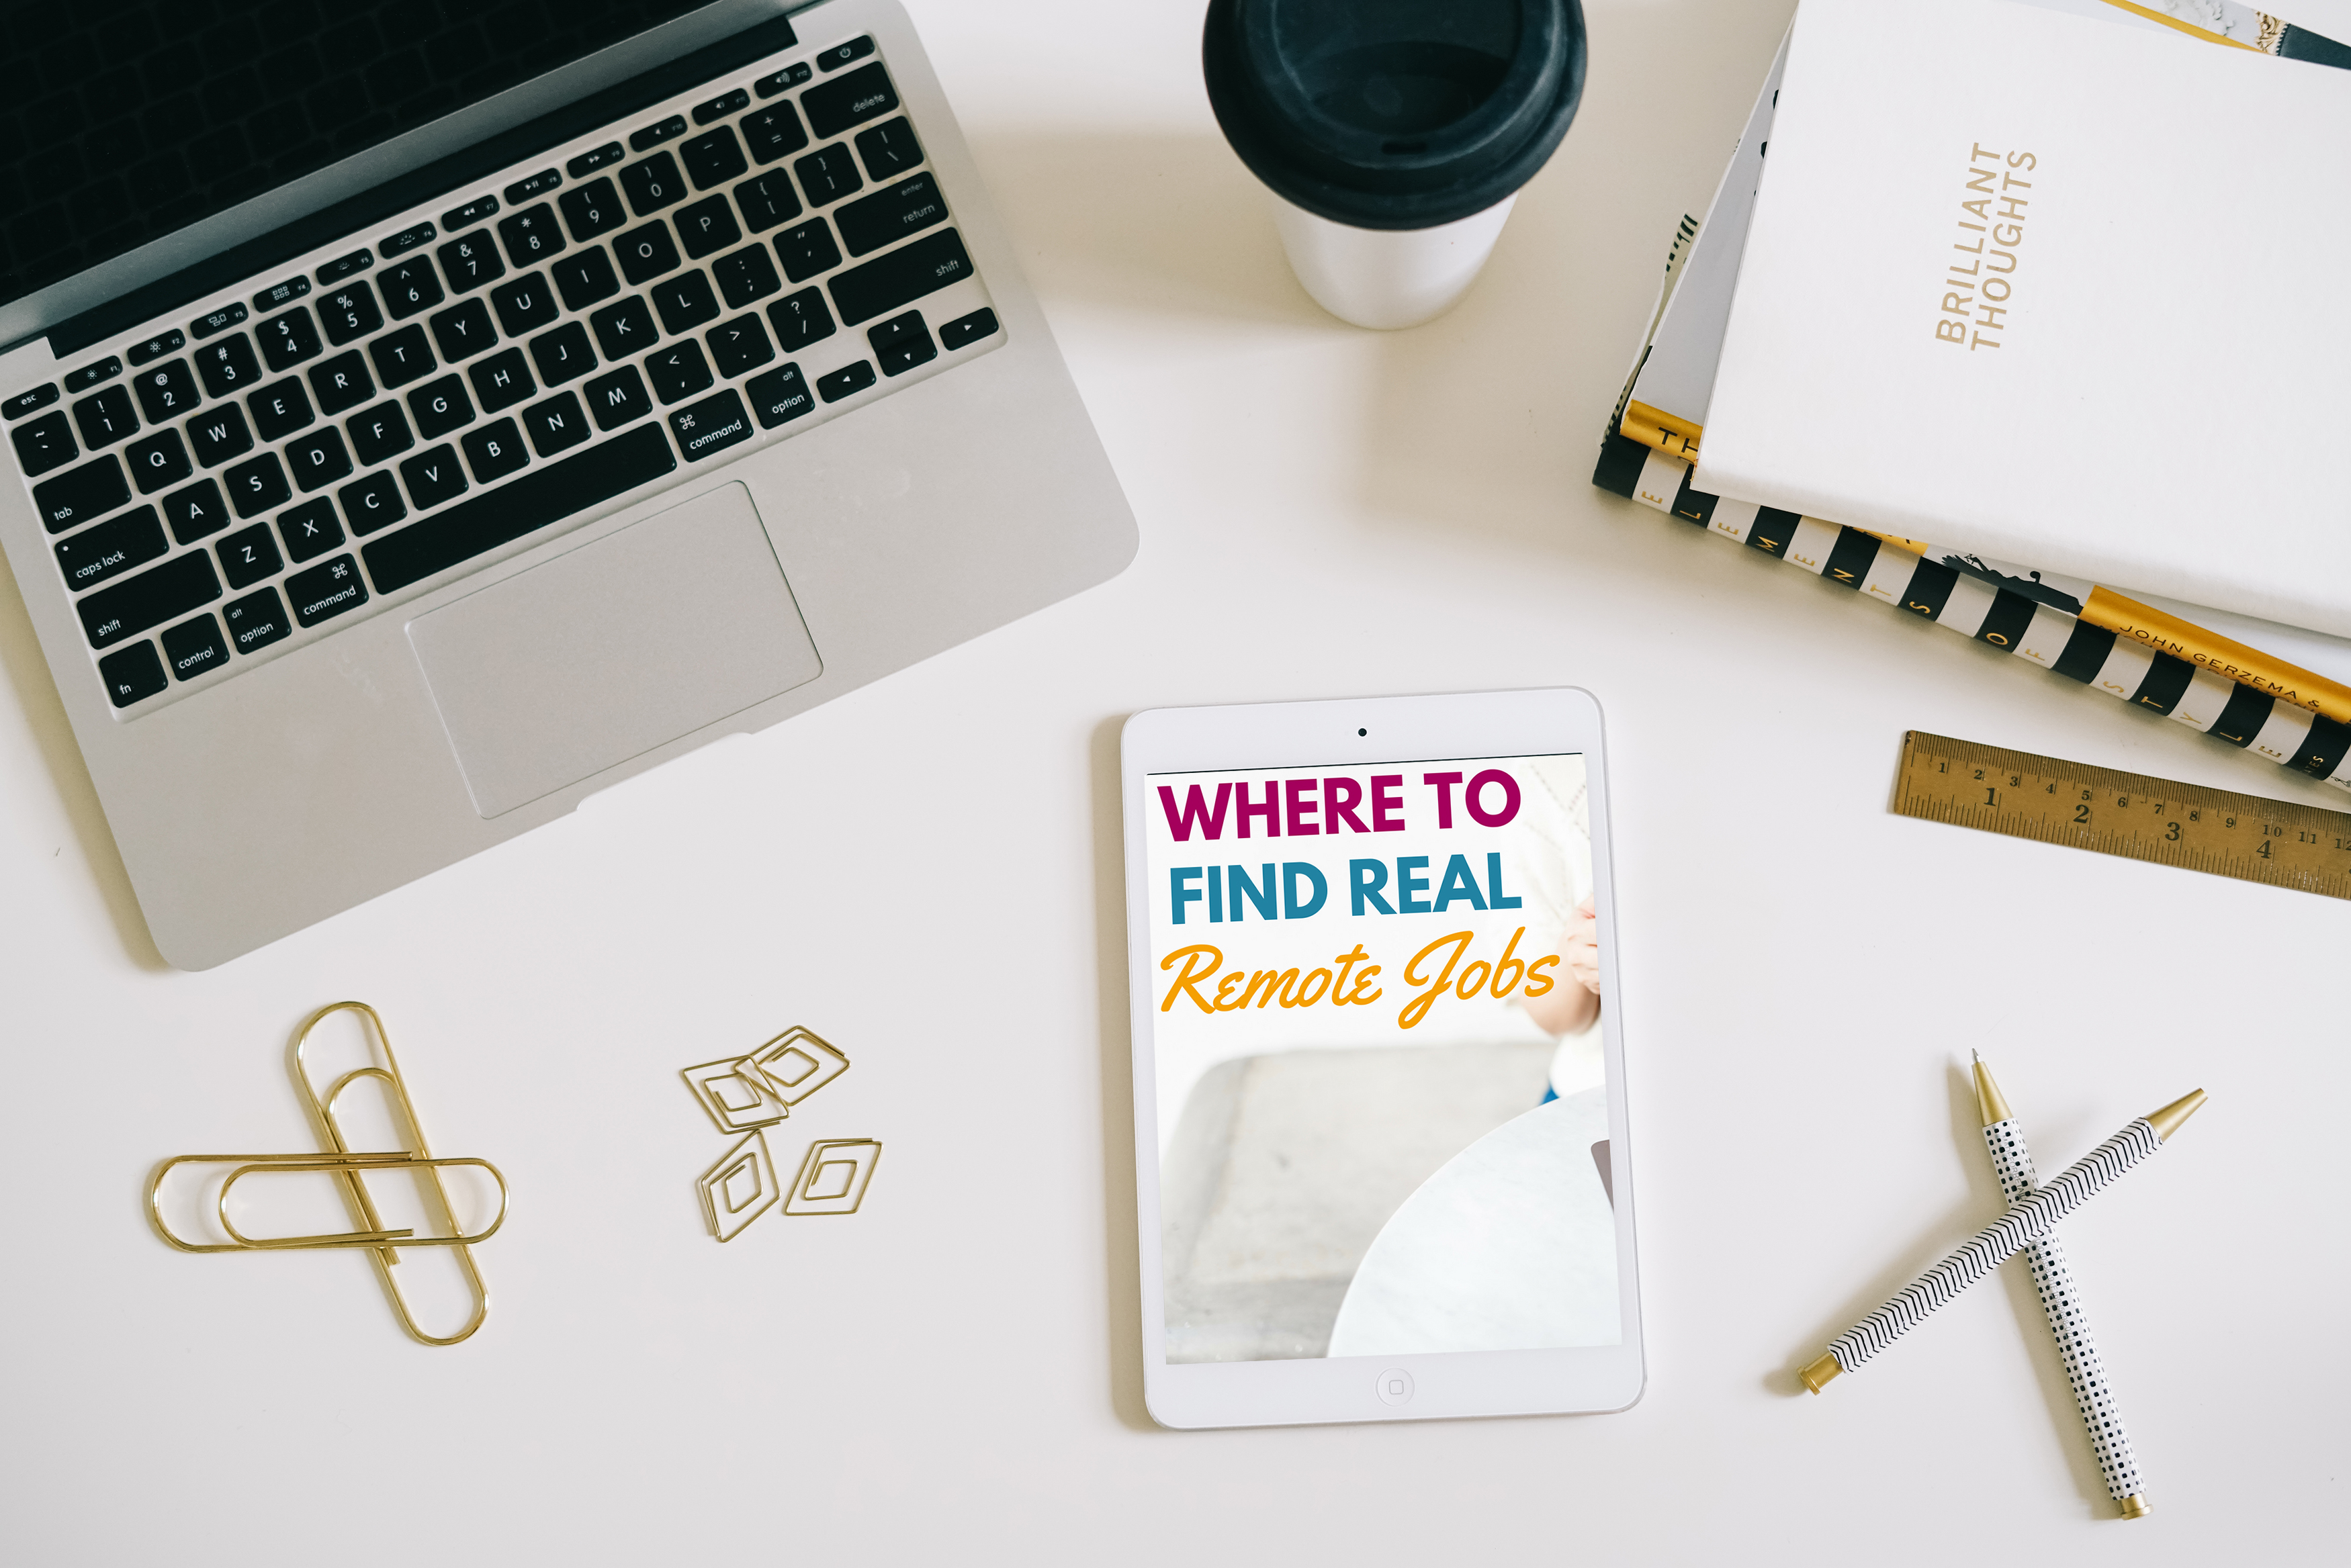 Ready to take your remote job search in your own hands? Grab your free guide to learn where you can find real remote jobs today!